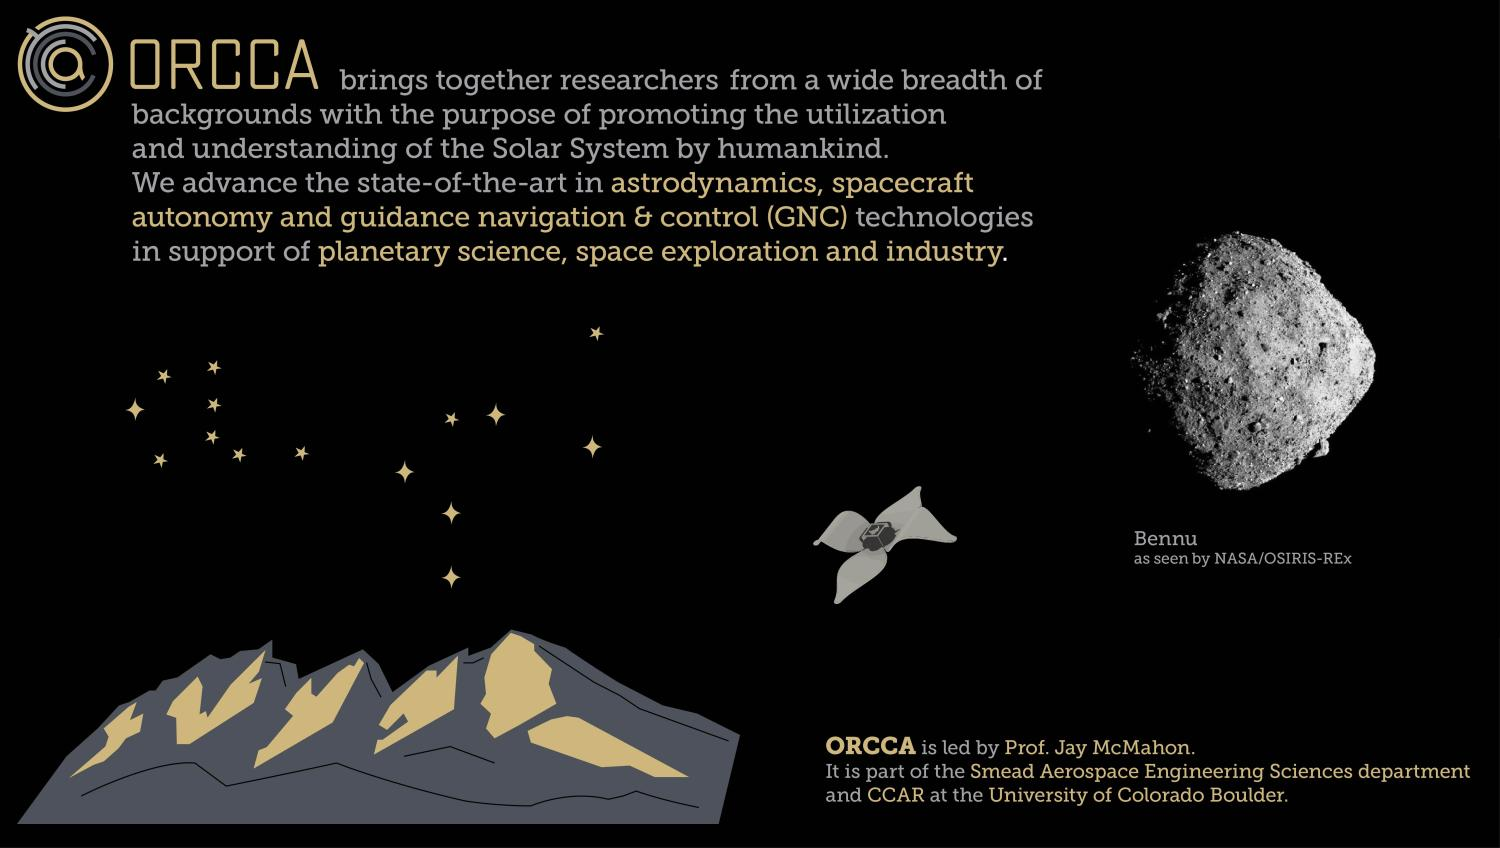 Overview graphic of ORCCA Lab